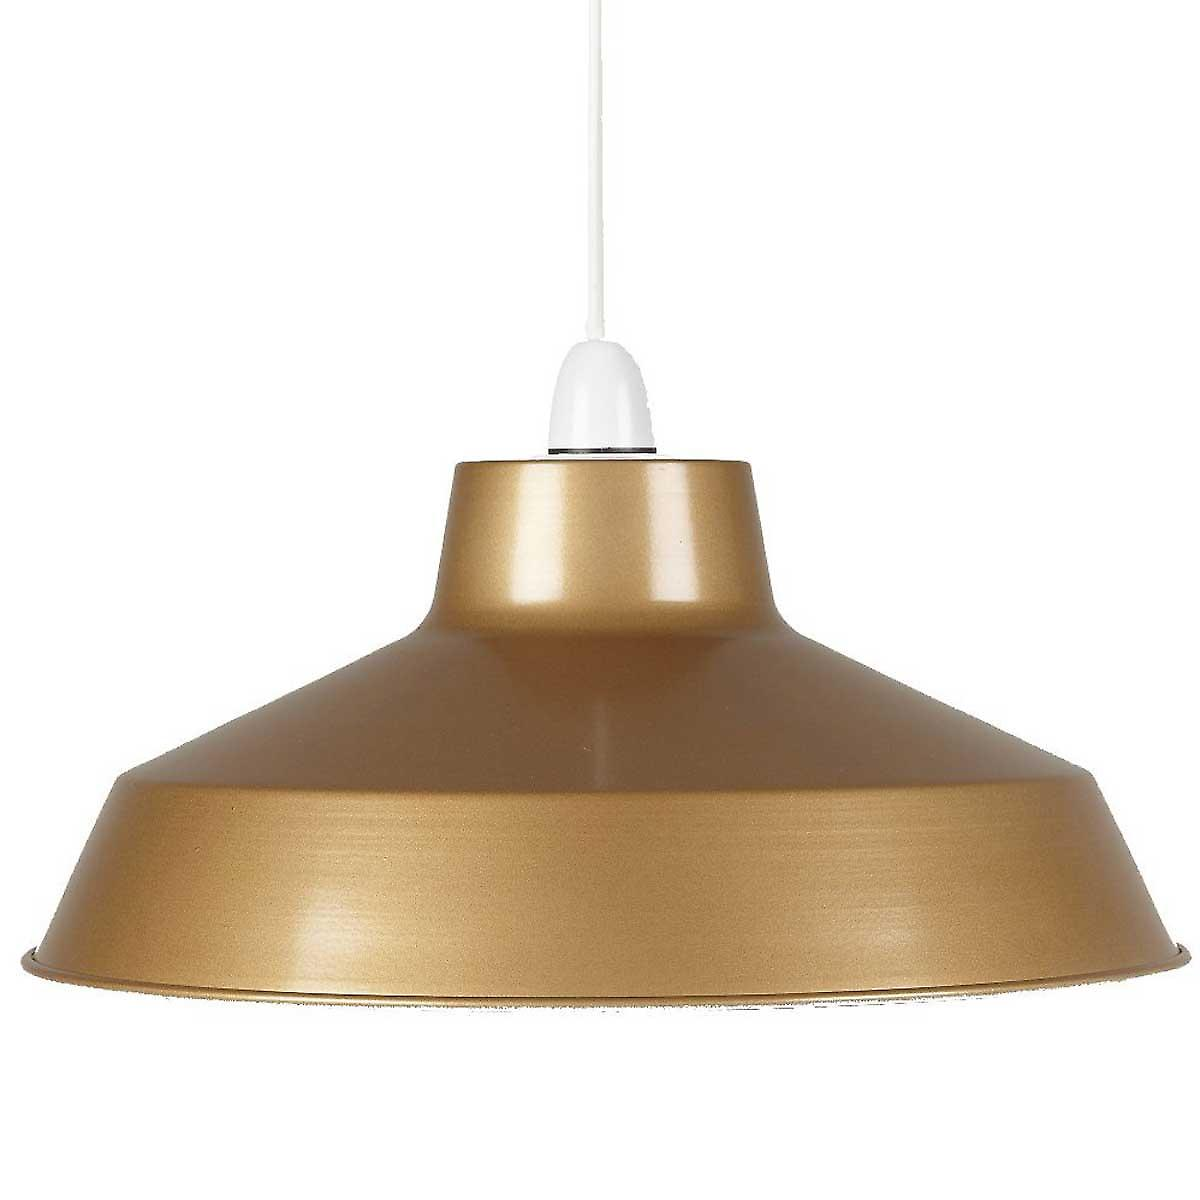 Small Gold Pluto Ceiling Pendant Shade - 30cm